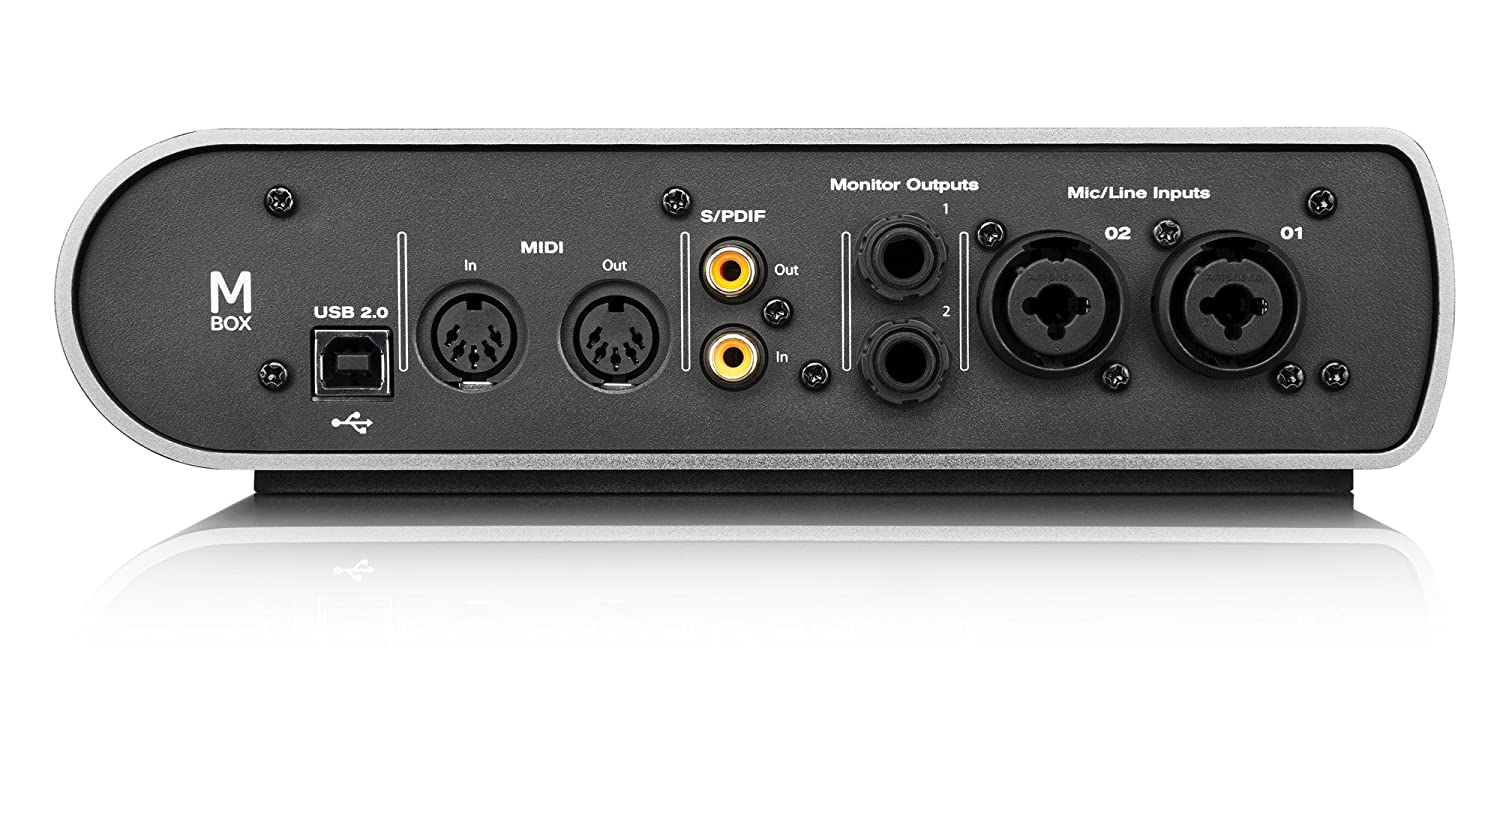 Mbox3 Professional Musical Instruments & Gear Pro Audio Equipment Avid Mbox 3 Pro Firewire Audio Interface